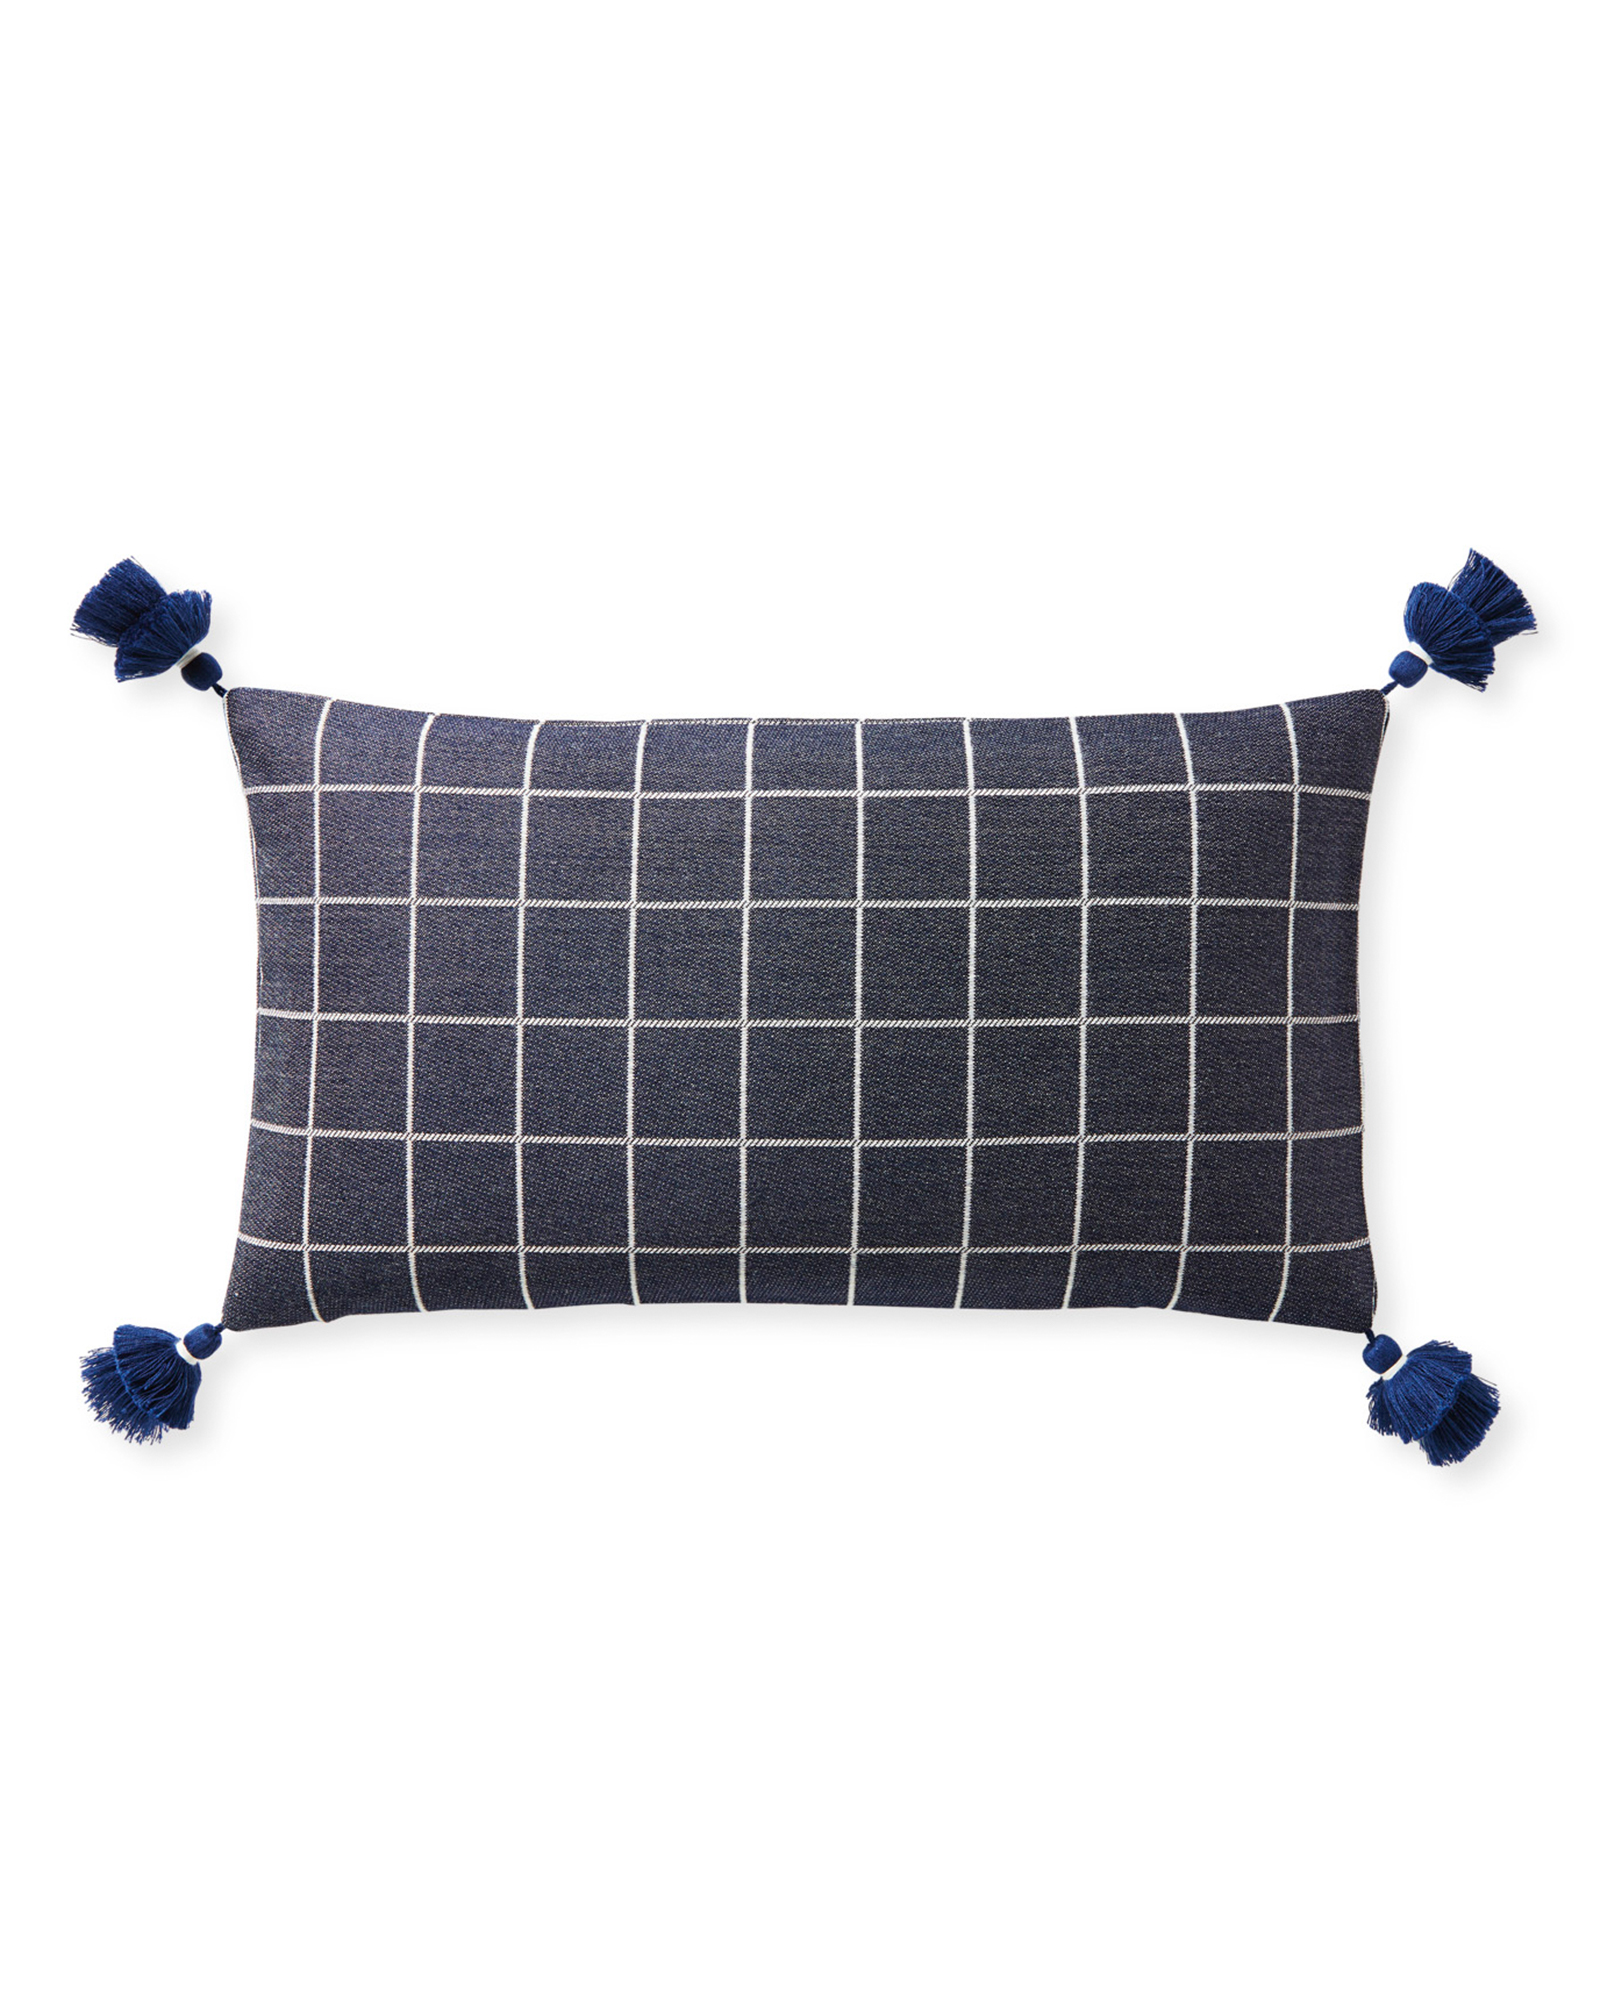 Sunbrella® Mayne Pillow Cover, Navy